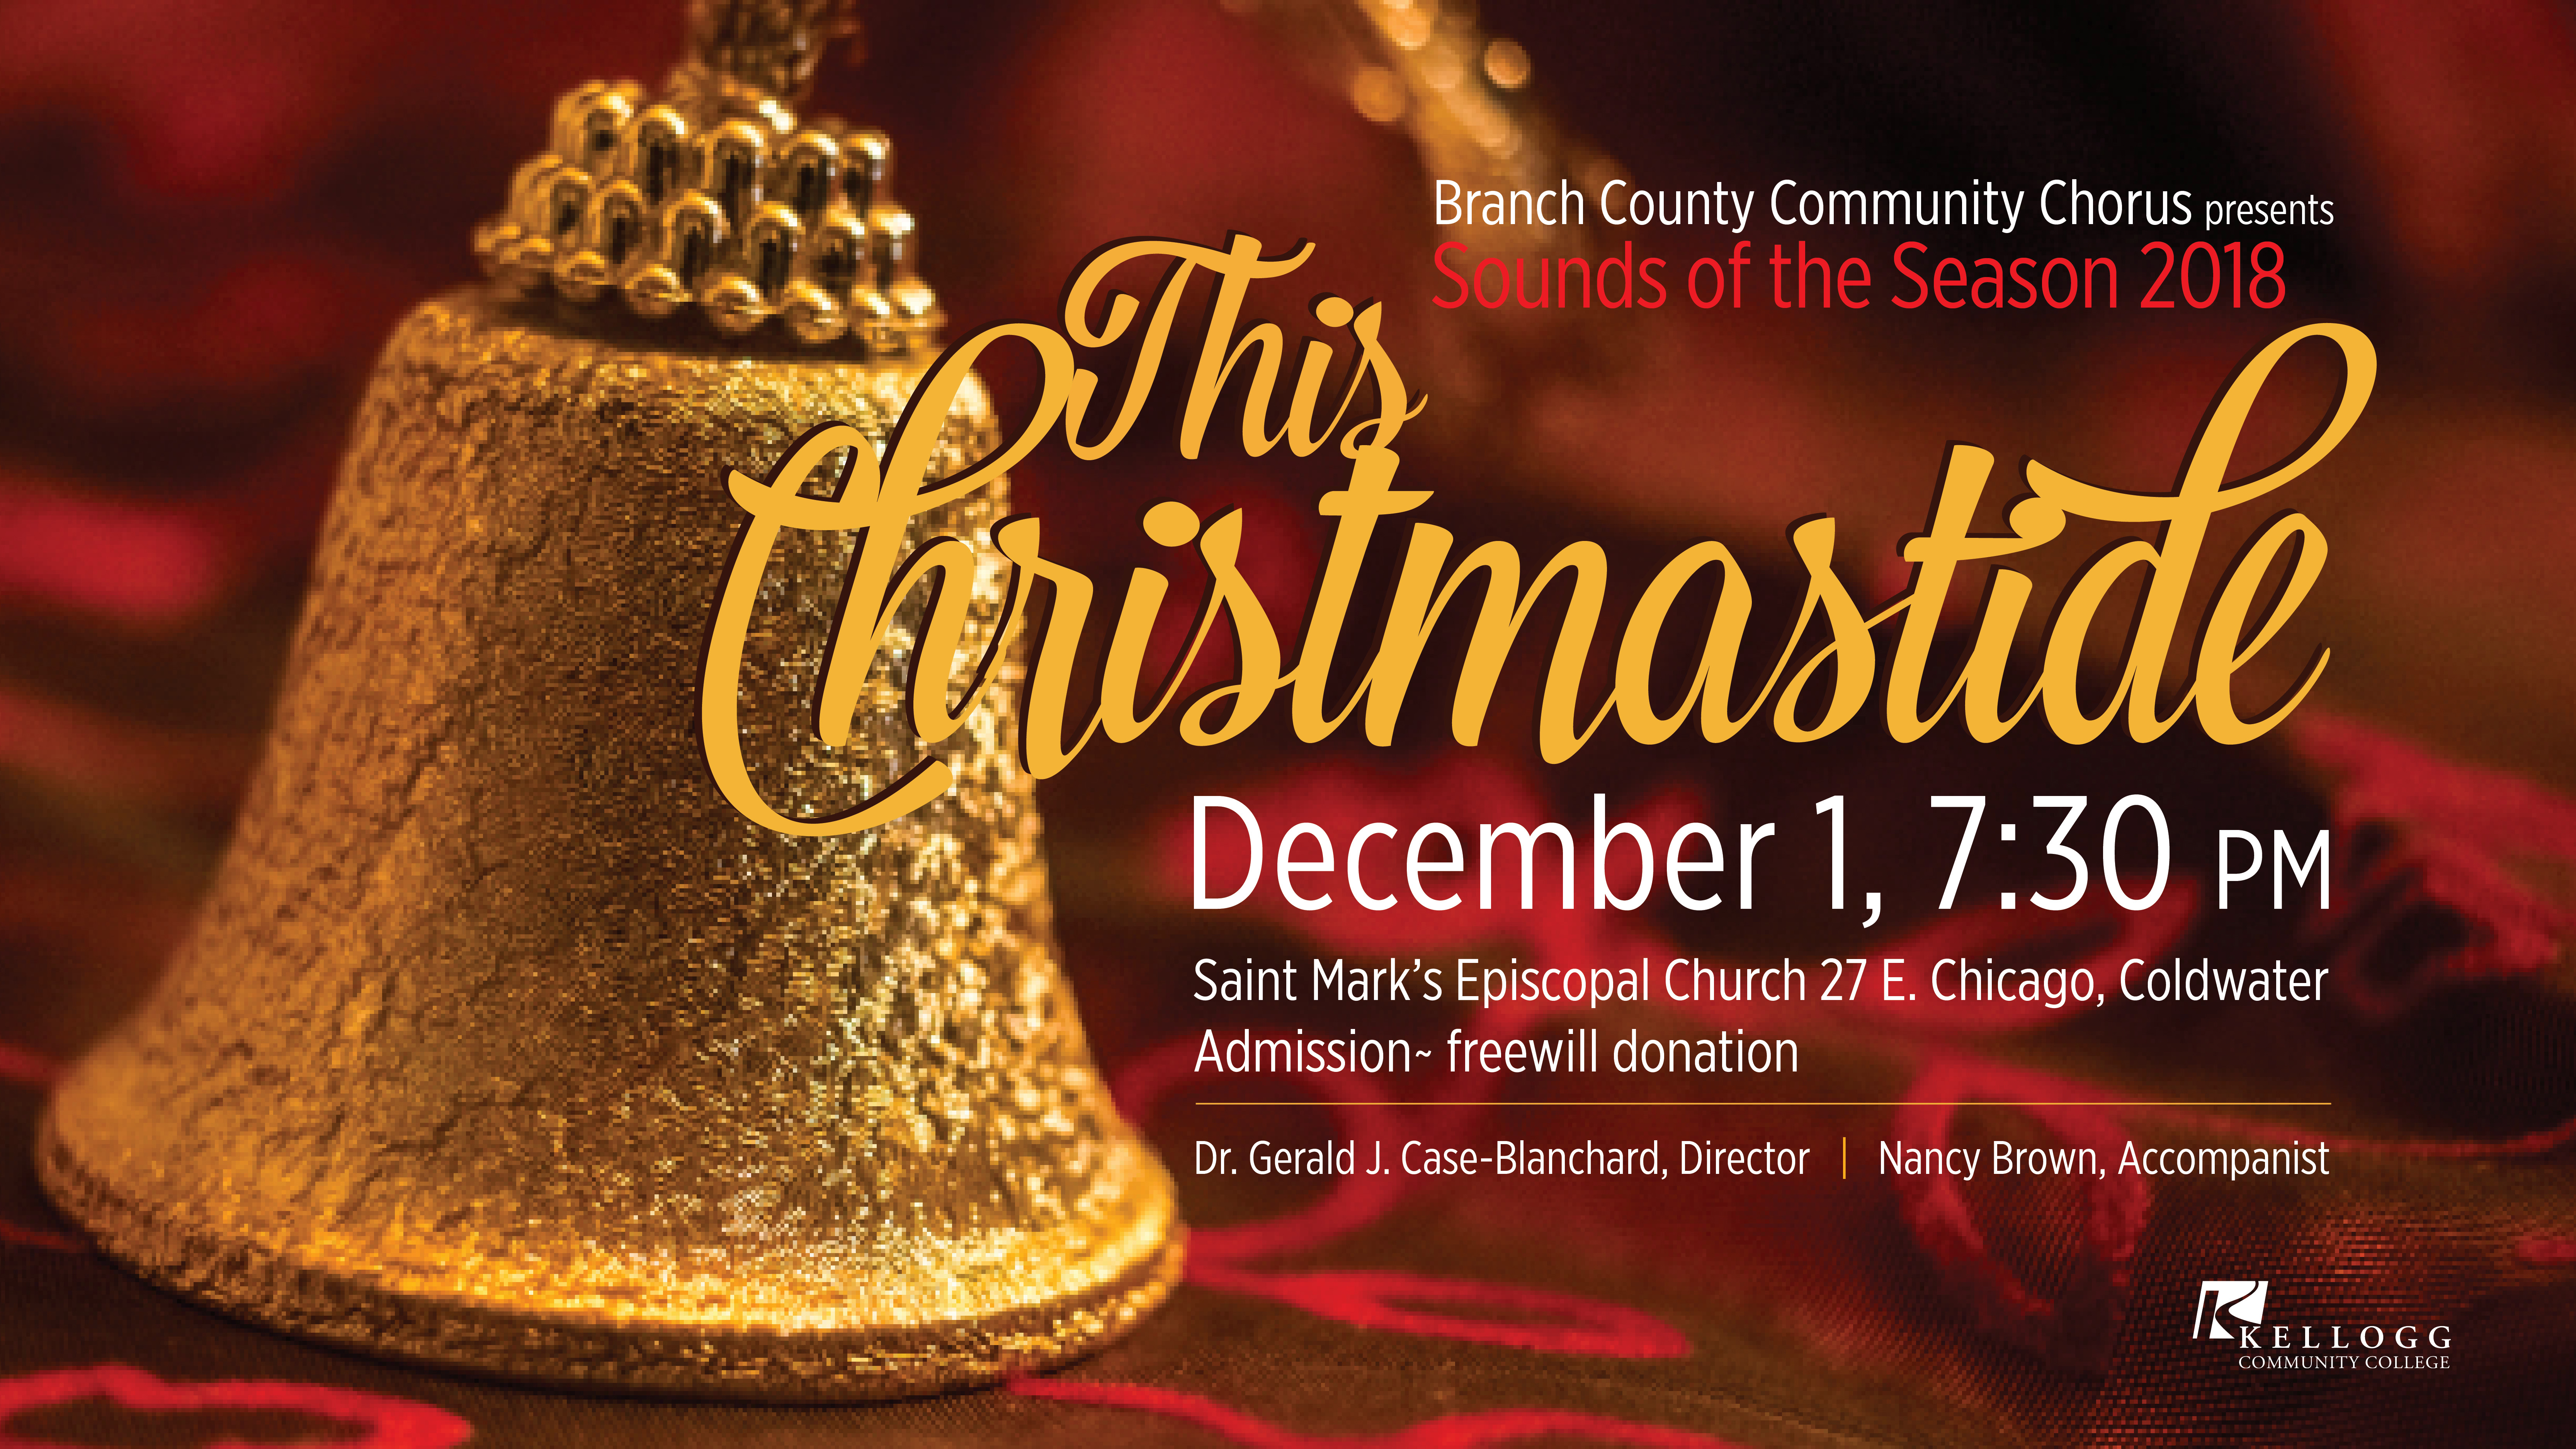 A text slide promoting KCC's upcoming holiday concert.